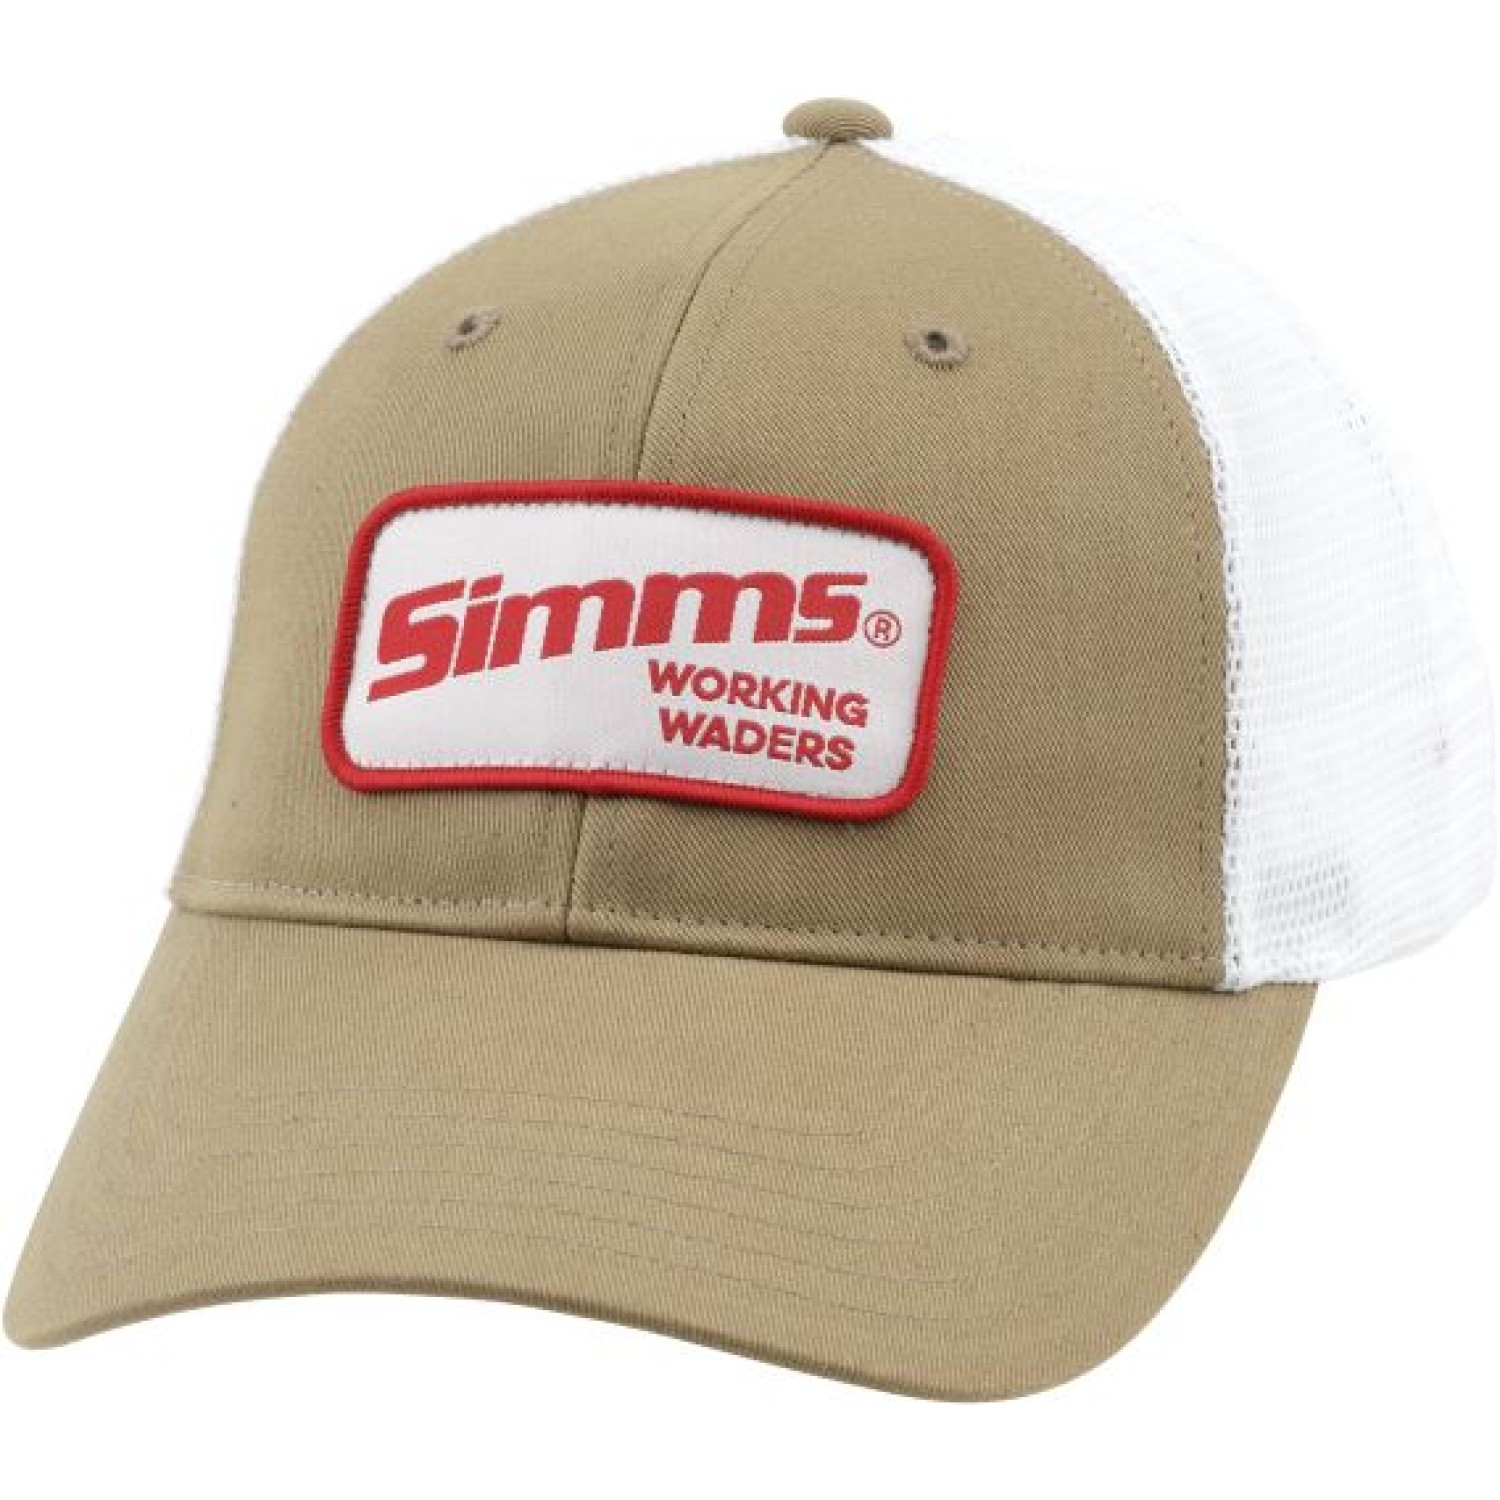 Simms Small Patch Trucker Wrkg Wdrs Coffee